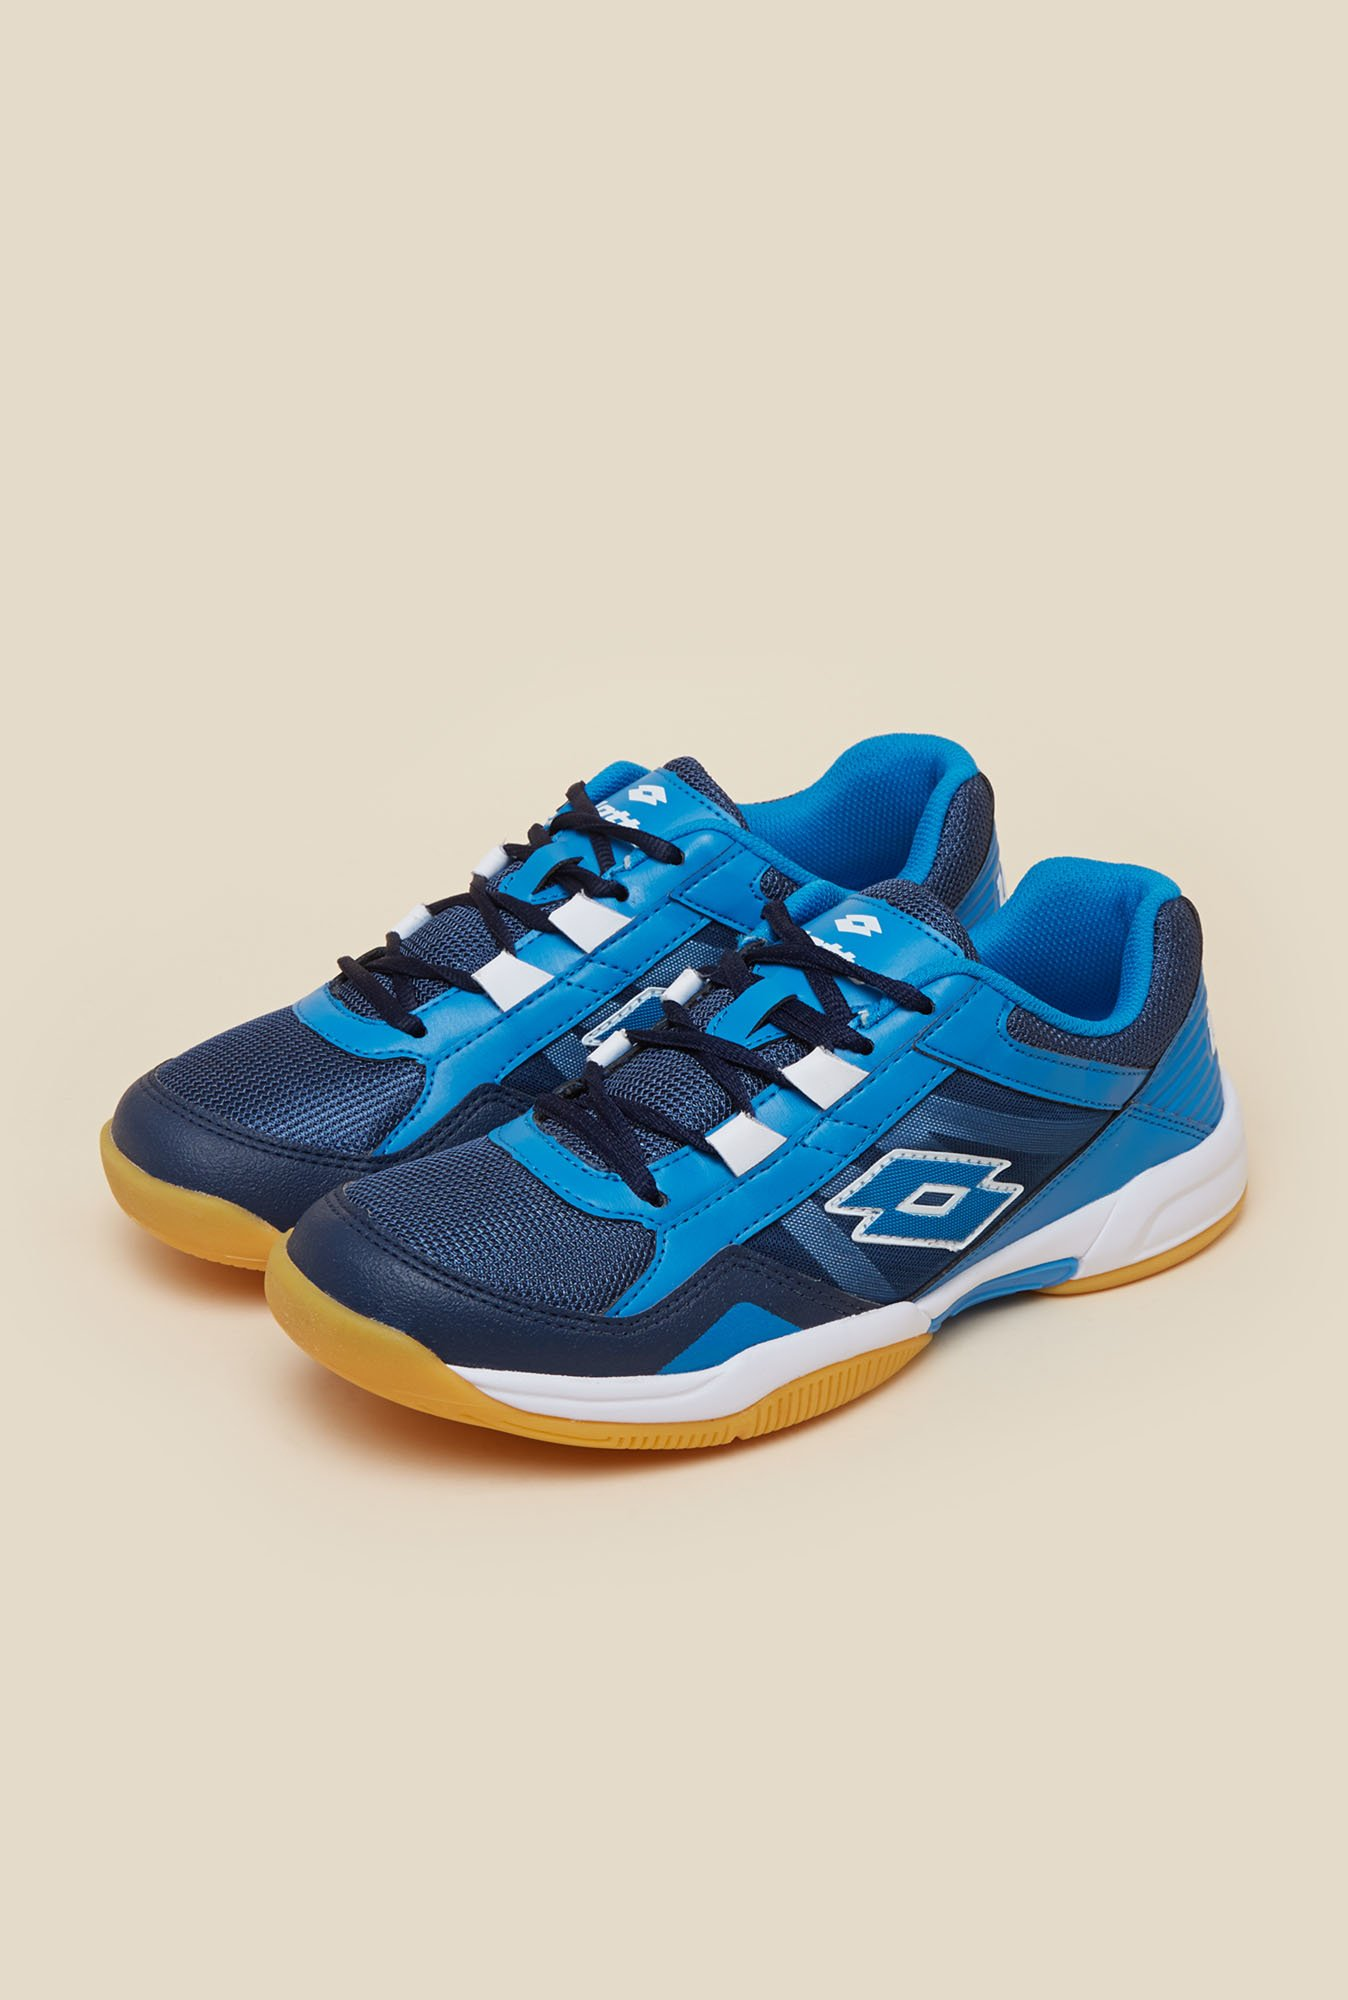 Lotto Jumper VI Navy Indoor Court Shoes